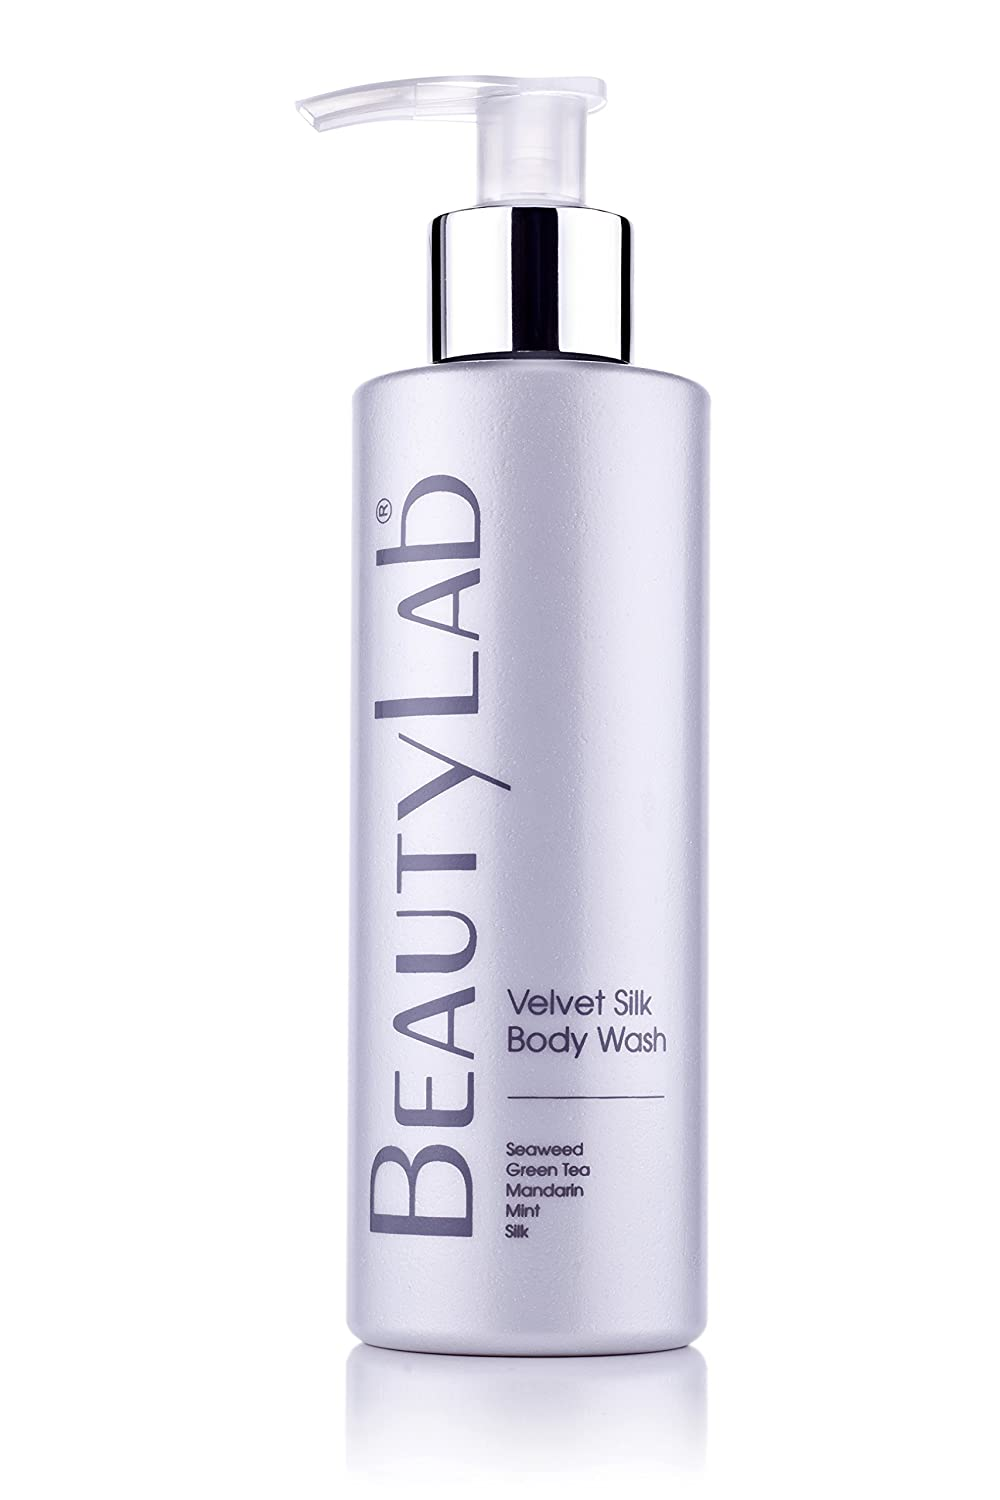 BeautyLab Bodycare Velvet Silk Body Wash 200 ml BeautyLab International SKD1004